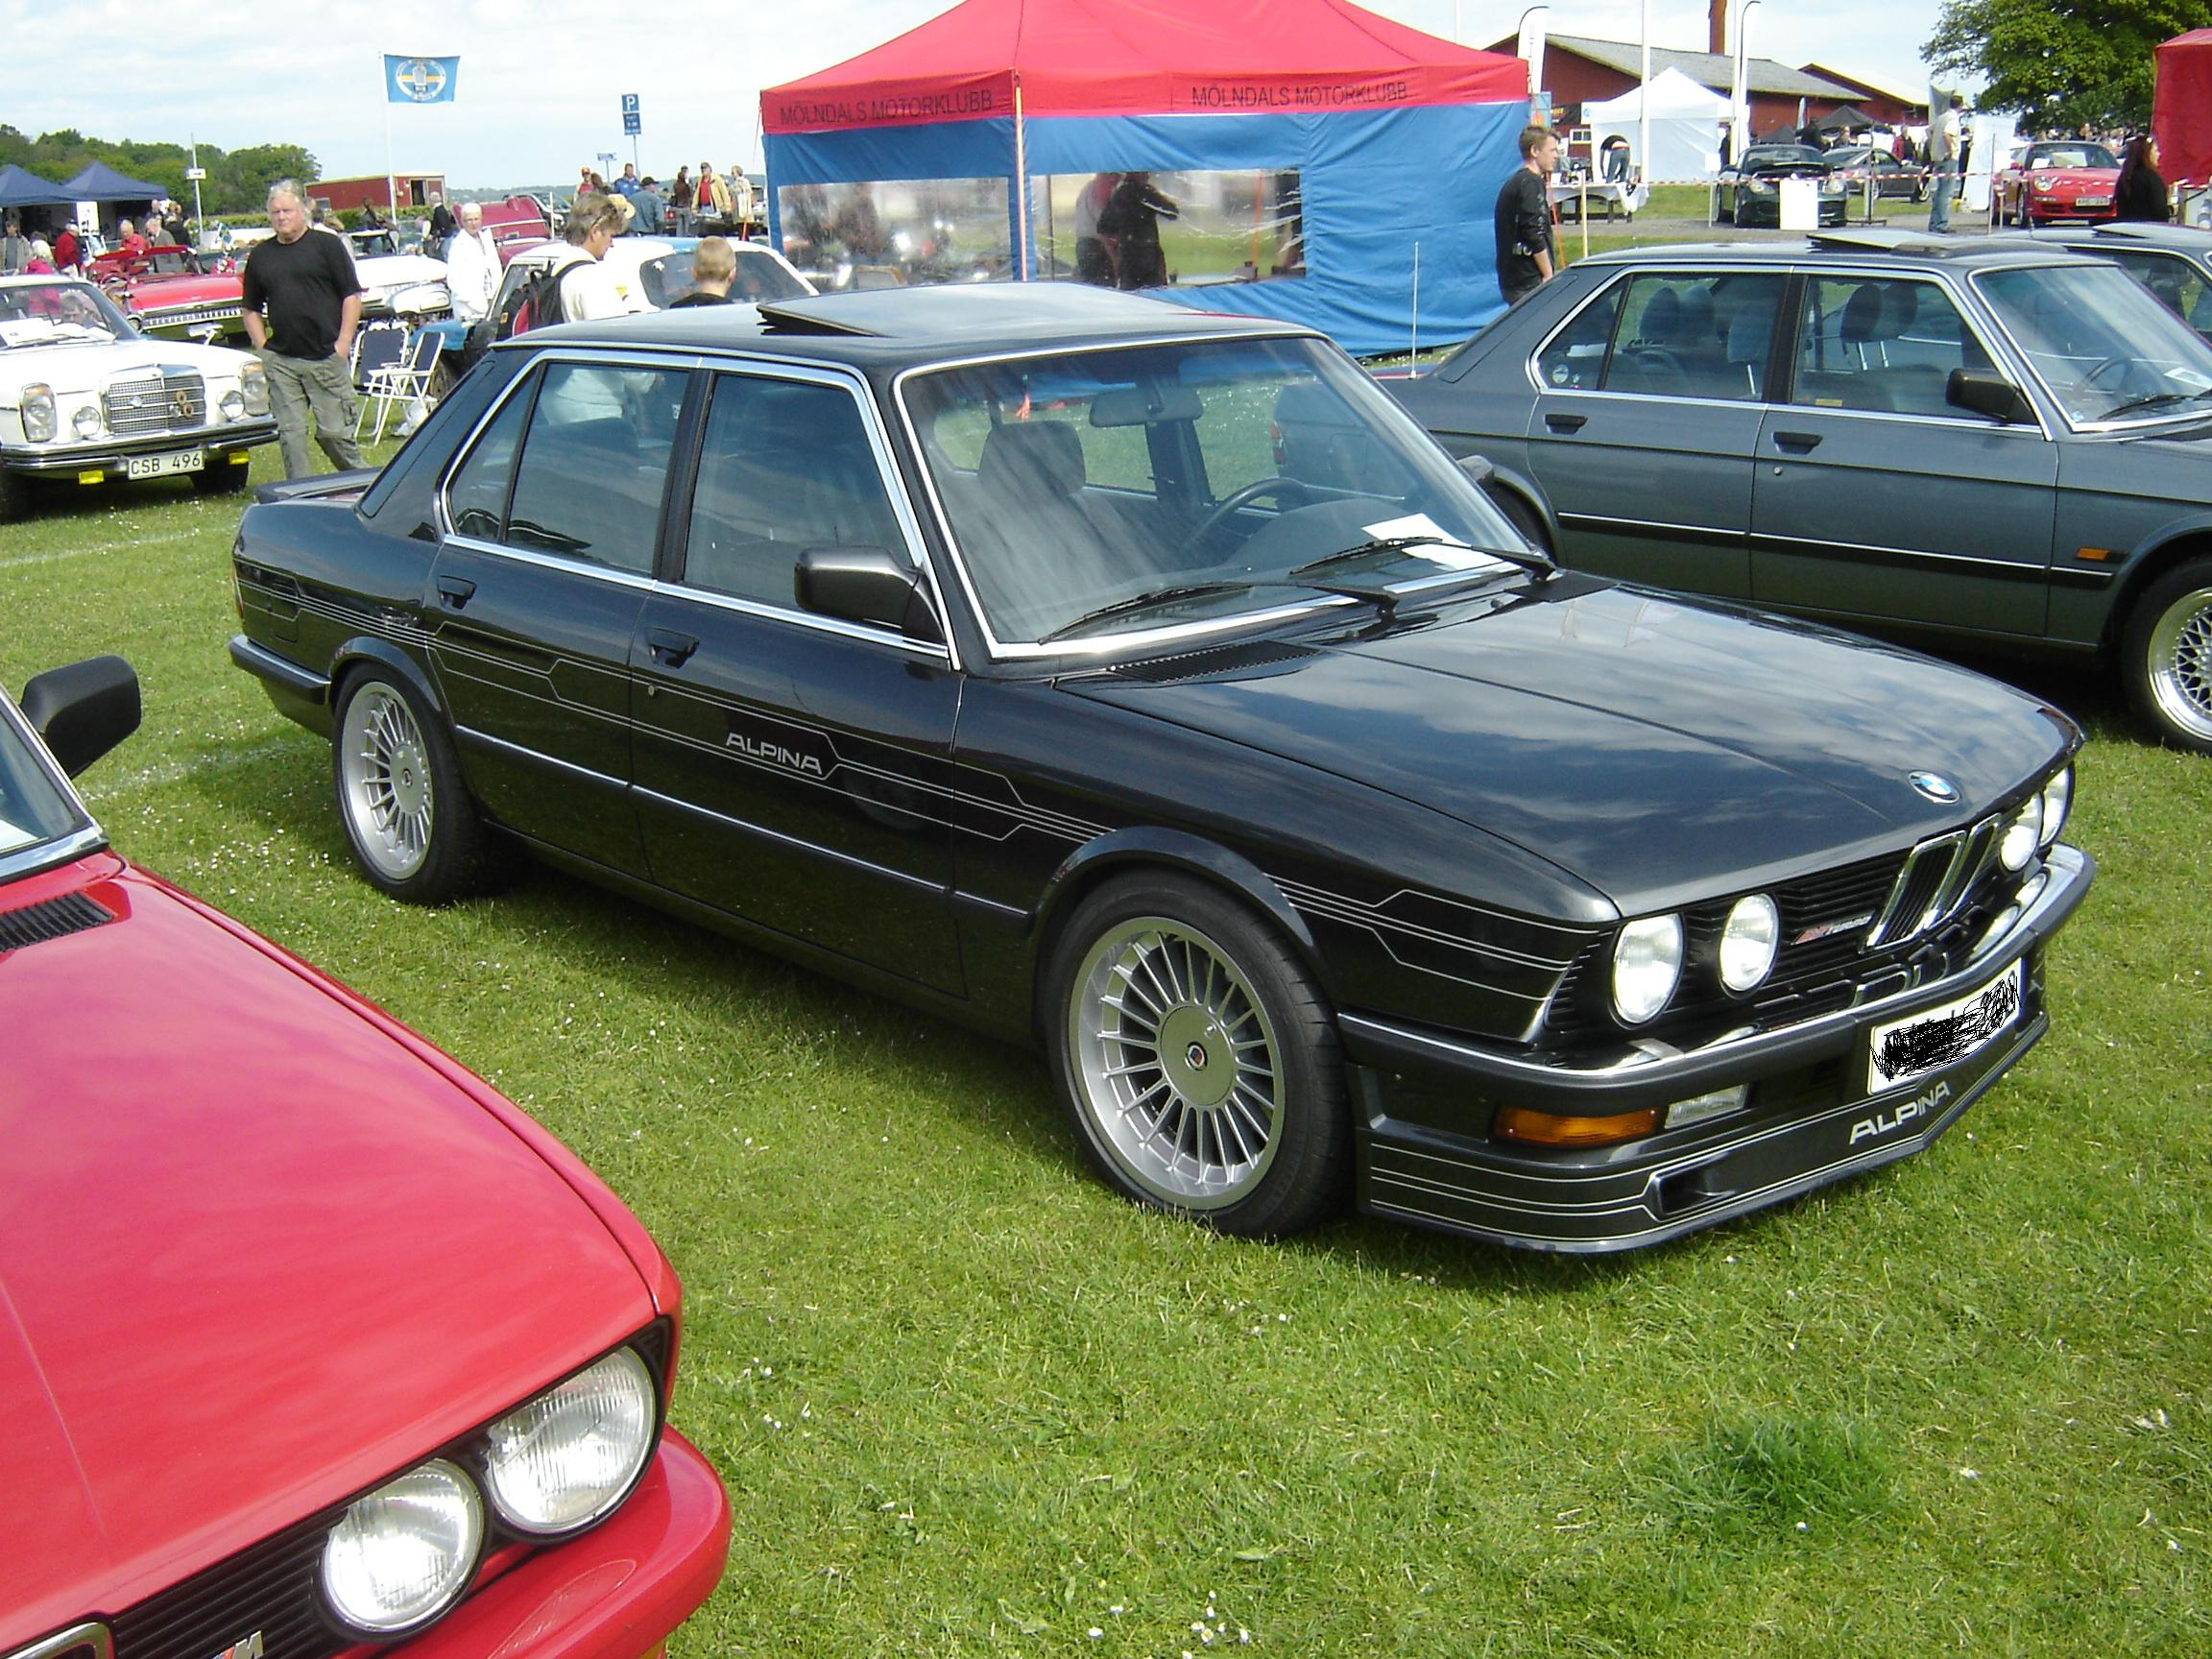 BMW Alpina B7 Turbo | Flickr - Photo Sharing!